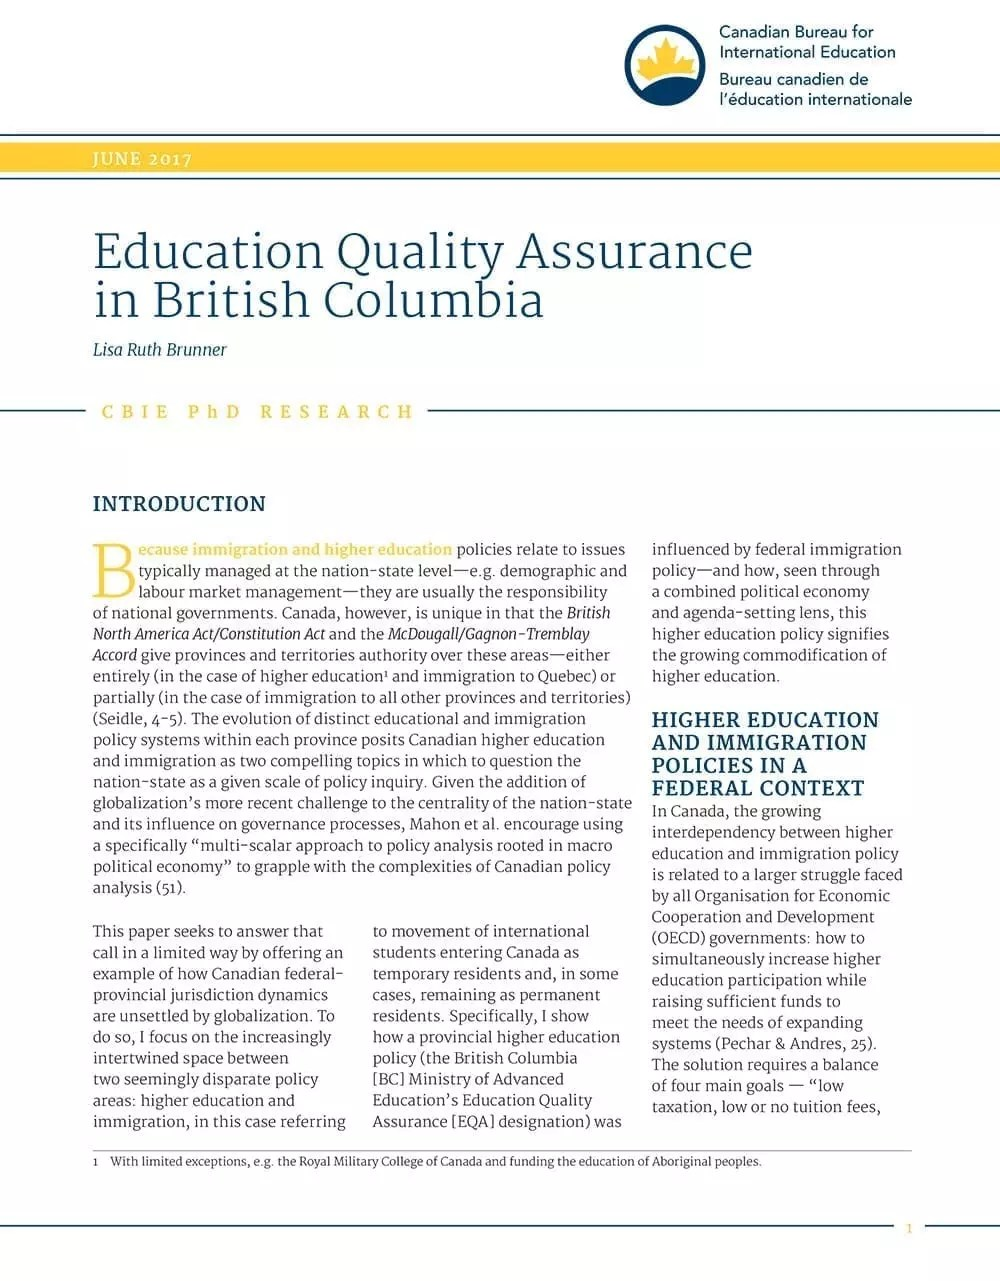 Education Quality Assurance in British Columbia